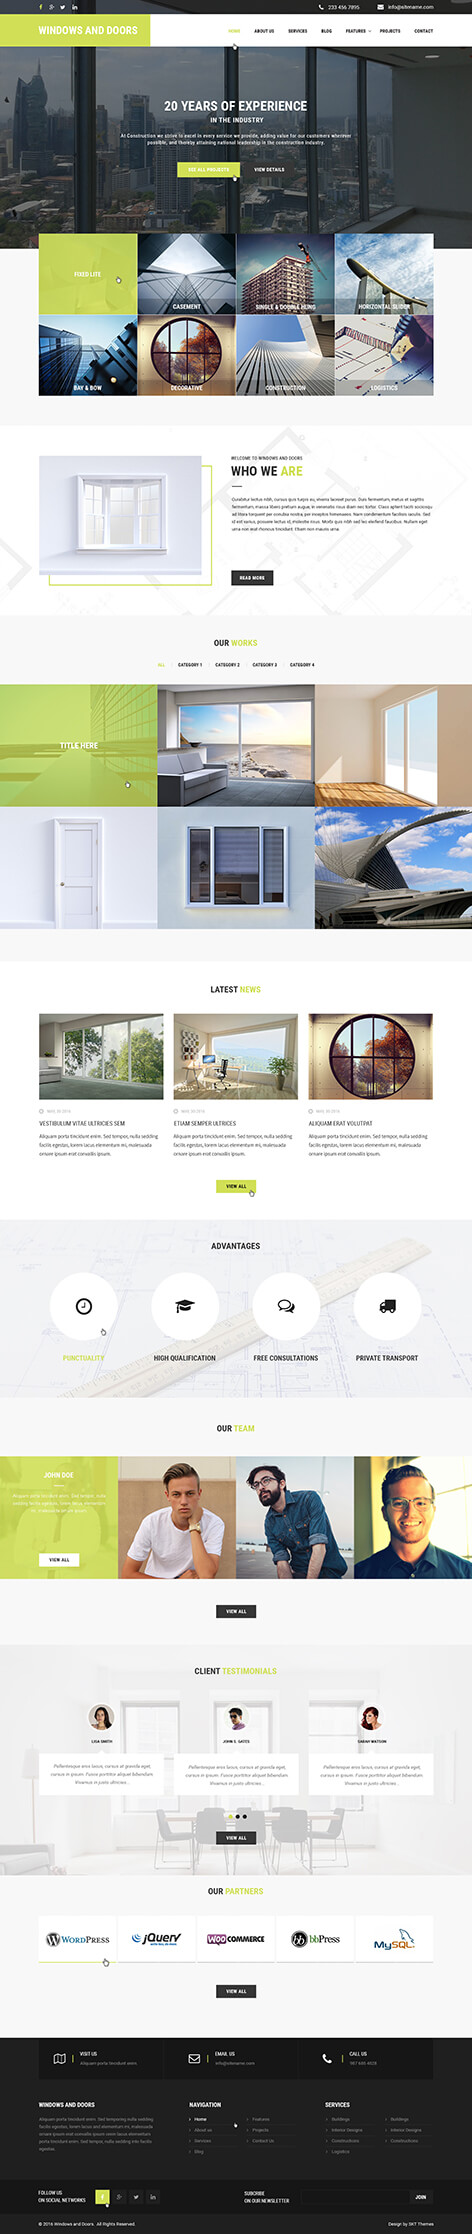 Windows and doors WordPress theme